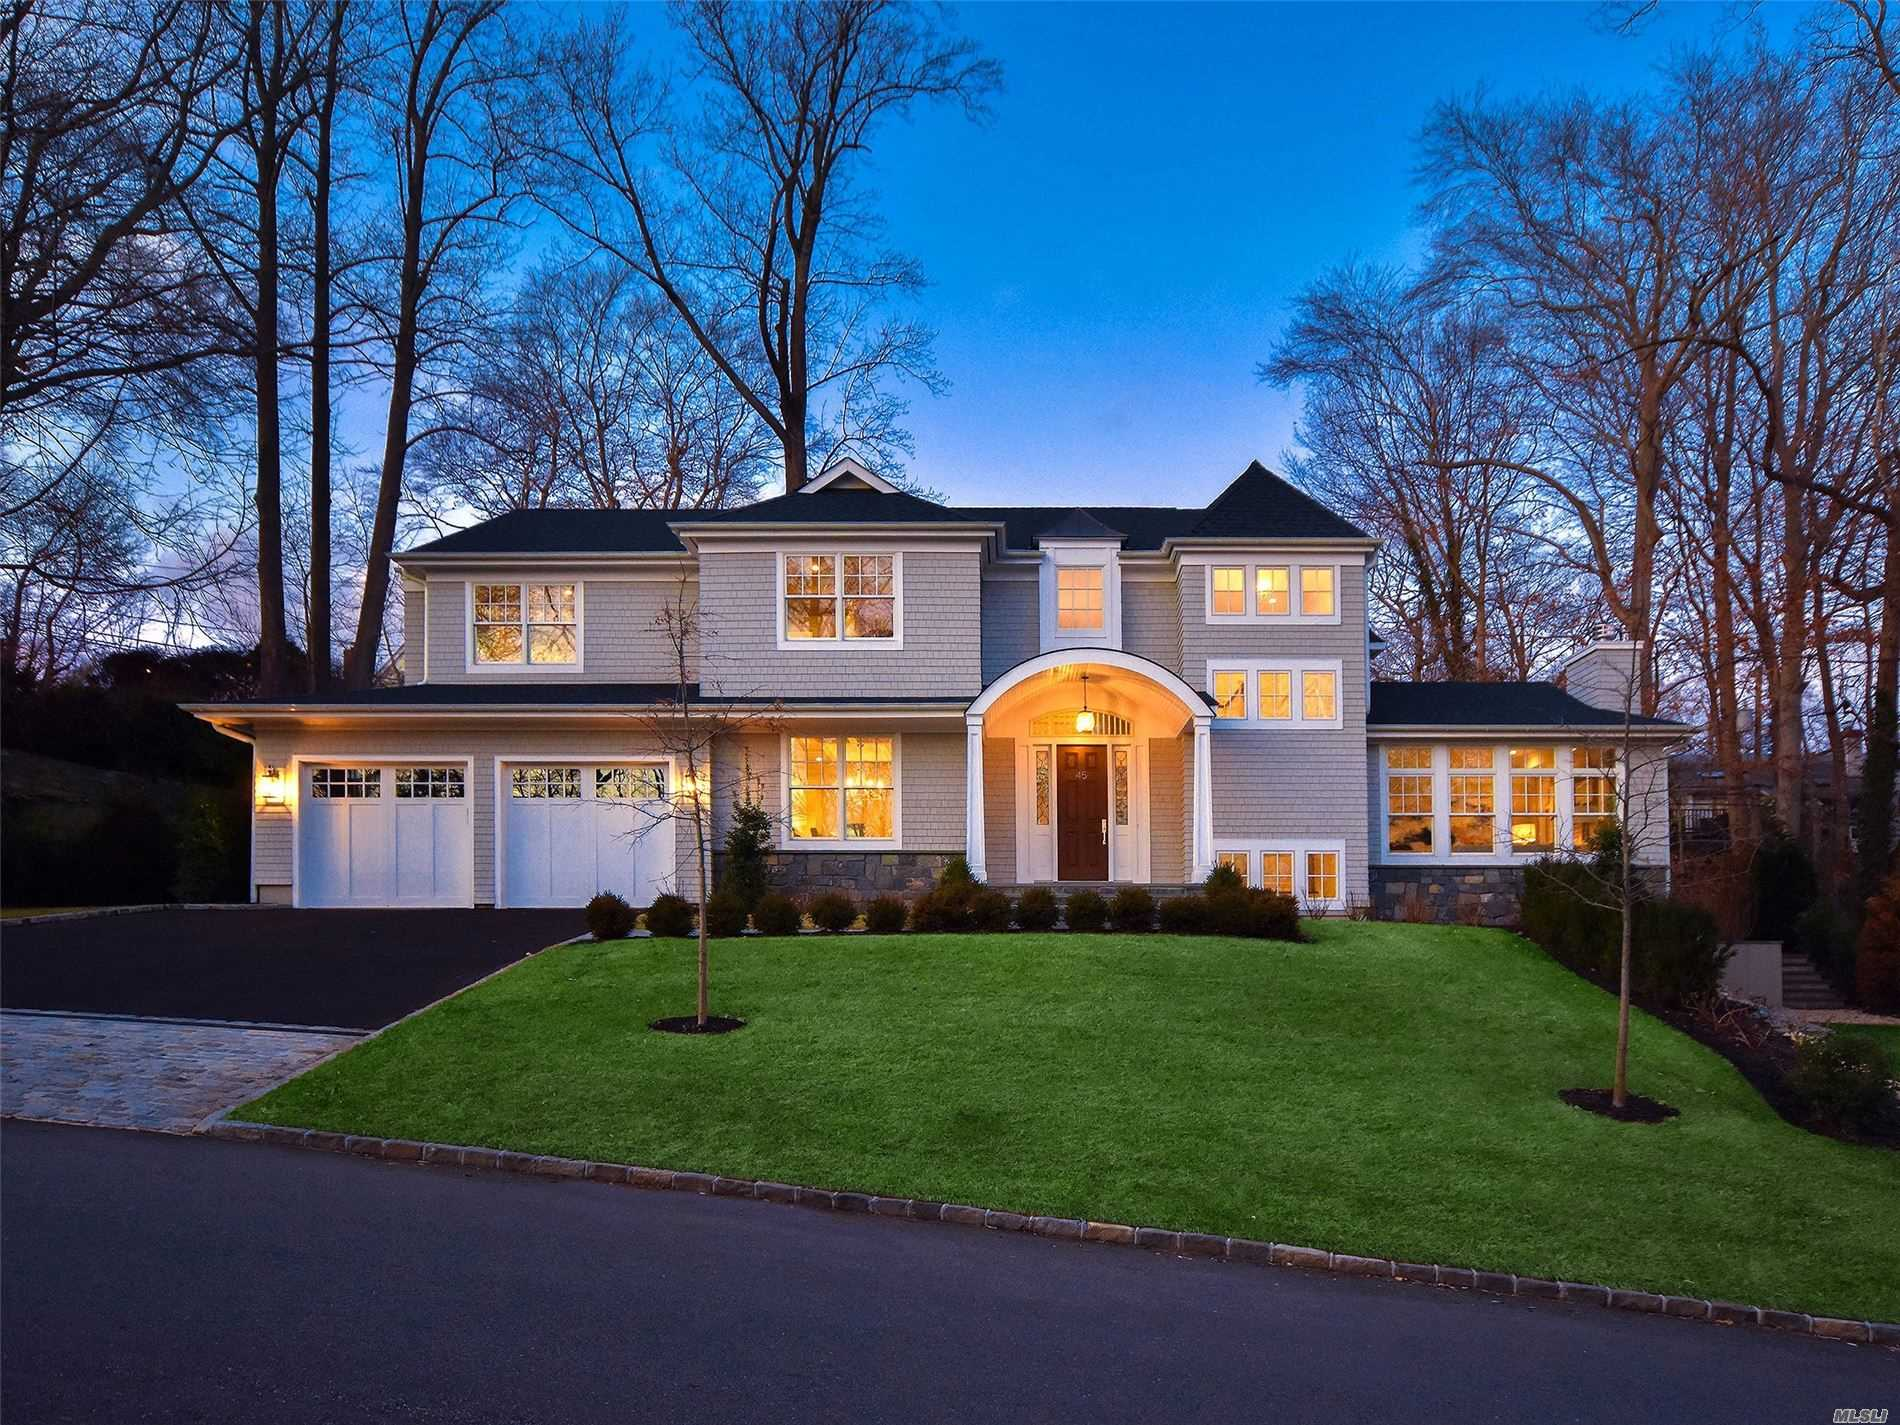 Prepare To Be Whisked Away In The Lap Of Luxury In This Exquisite Country Estates Home. This Elegant, Spacious And Meticulously Built Home Offers Masterfully Designed Principal Rooms Detailed With Thick Moldings, Coffered Ceilings And Large Windows Allowing Light In All Spaces. Entertain With Ease And Experience Blissful Moments Each Day In This One-Of-A Kind Gem. Finished Basement Square Footage Is Included In The Total